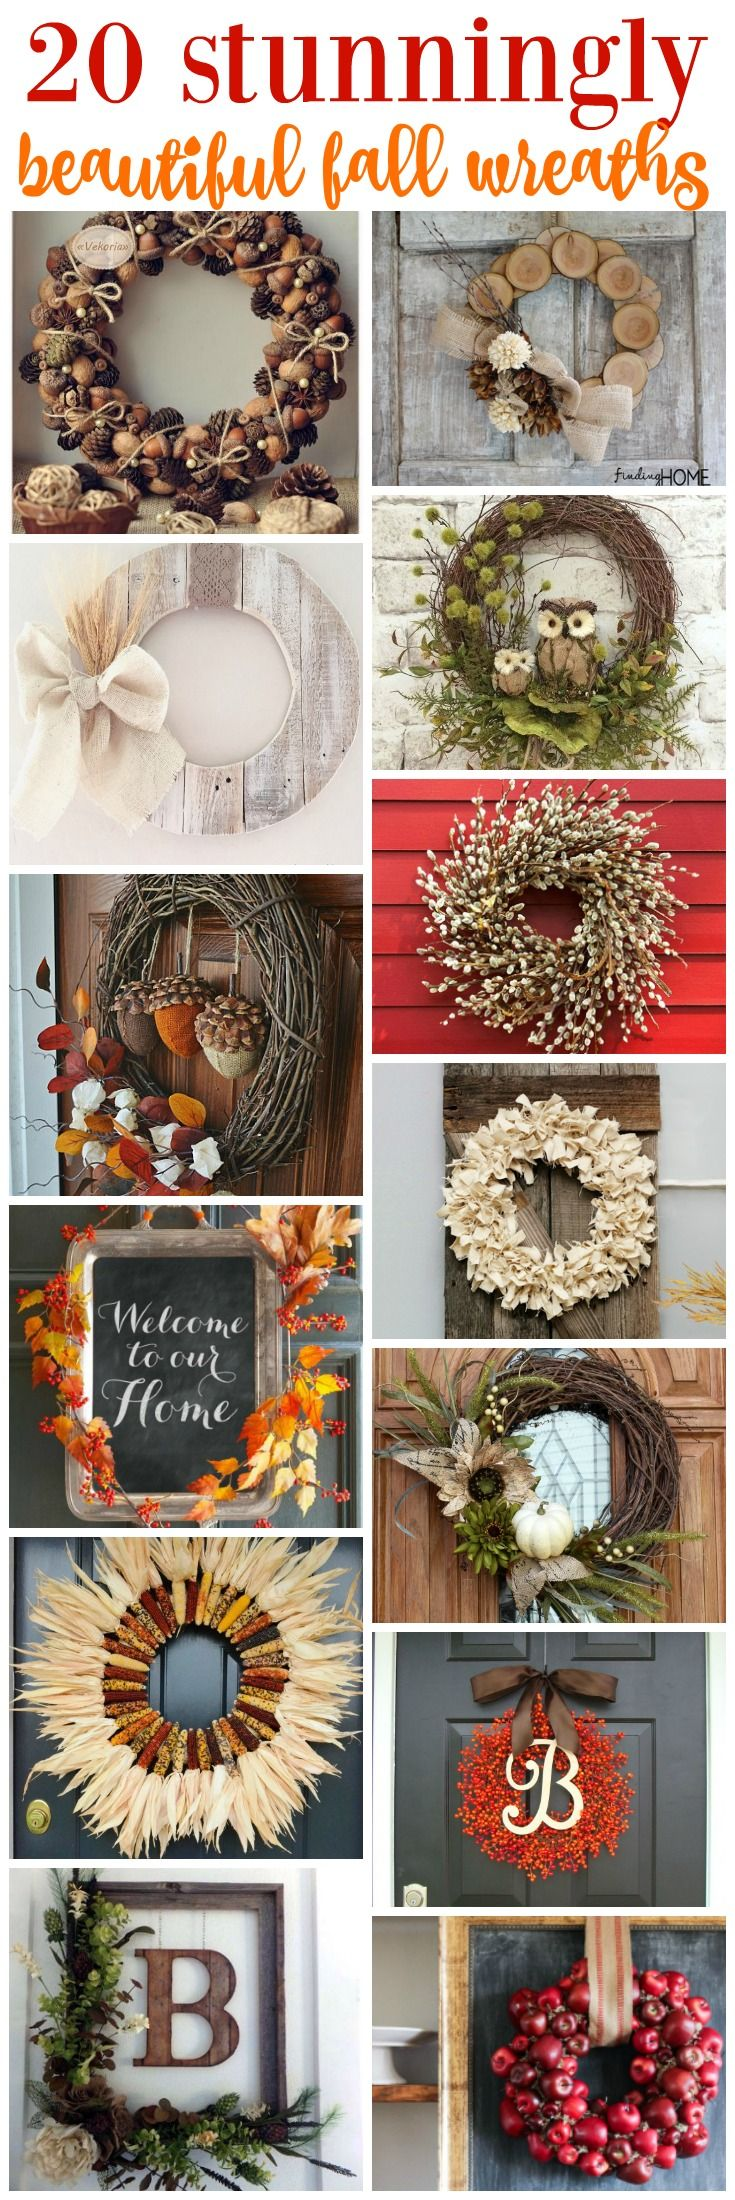 20-stunningly-beautiful-fall-wreaths                                                                                                                                                                                 More